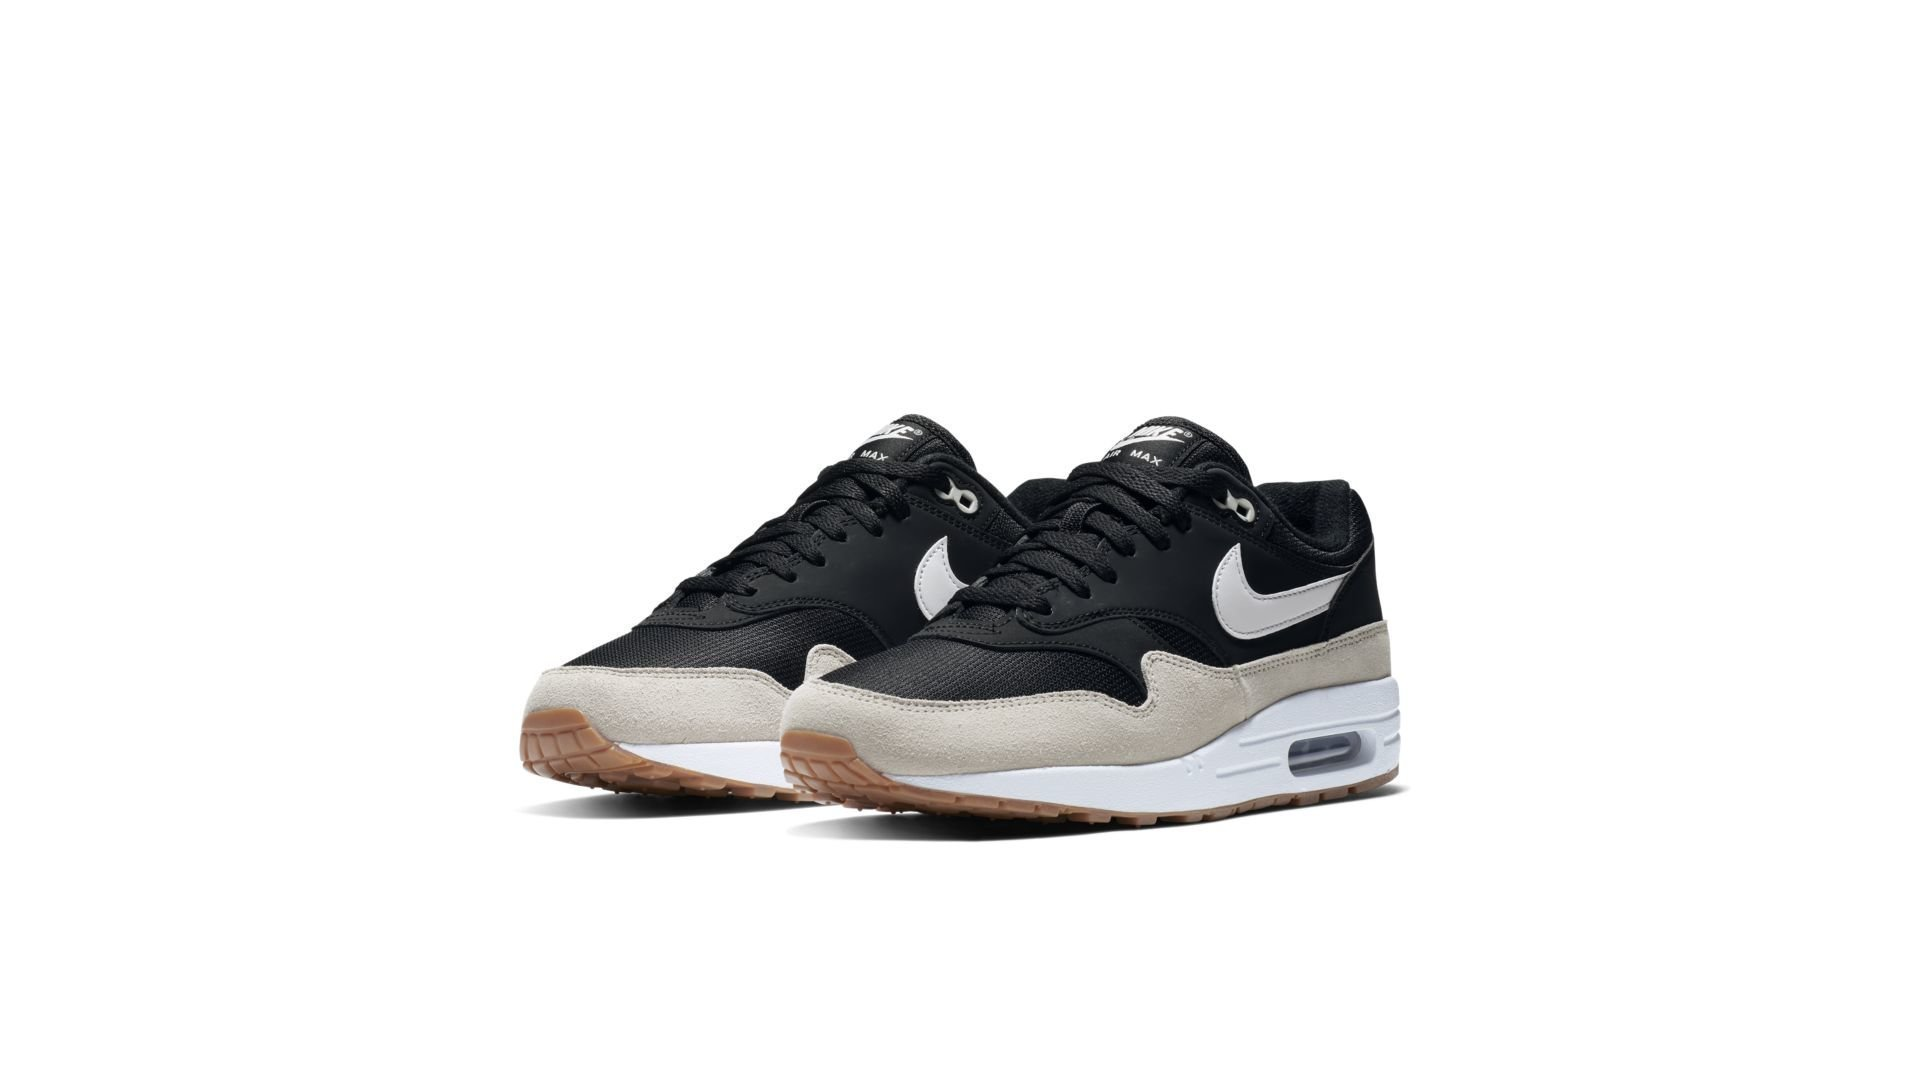 Nike Air Max 1 Black Light Bone White (AH8145 009)